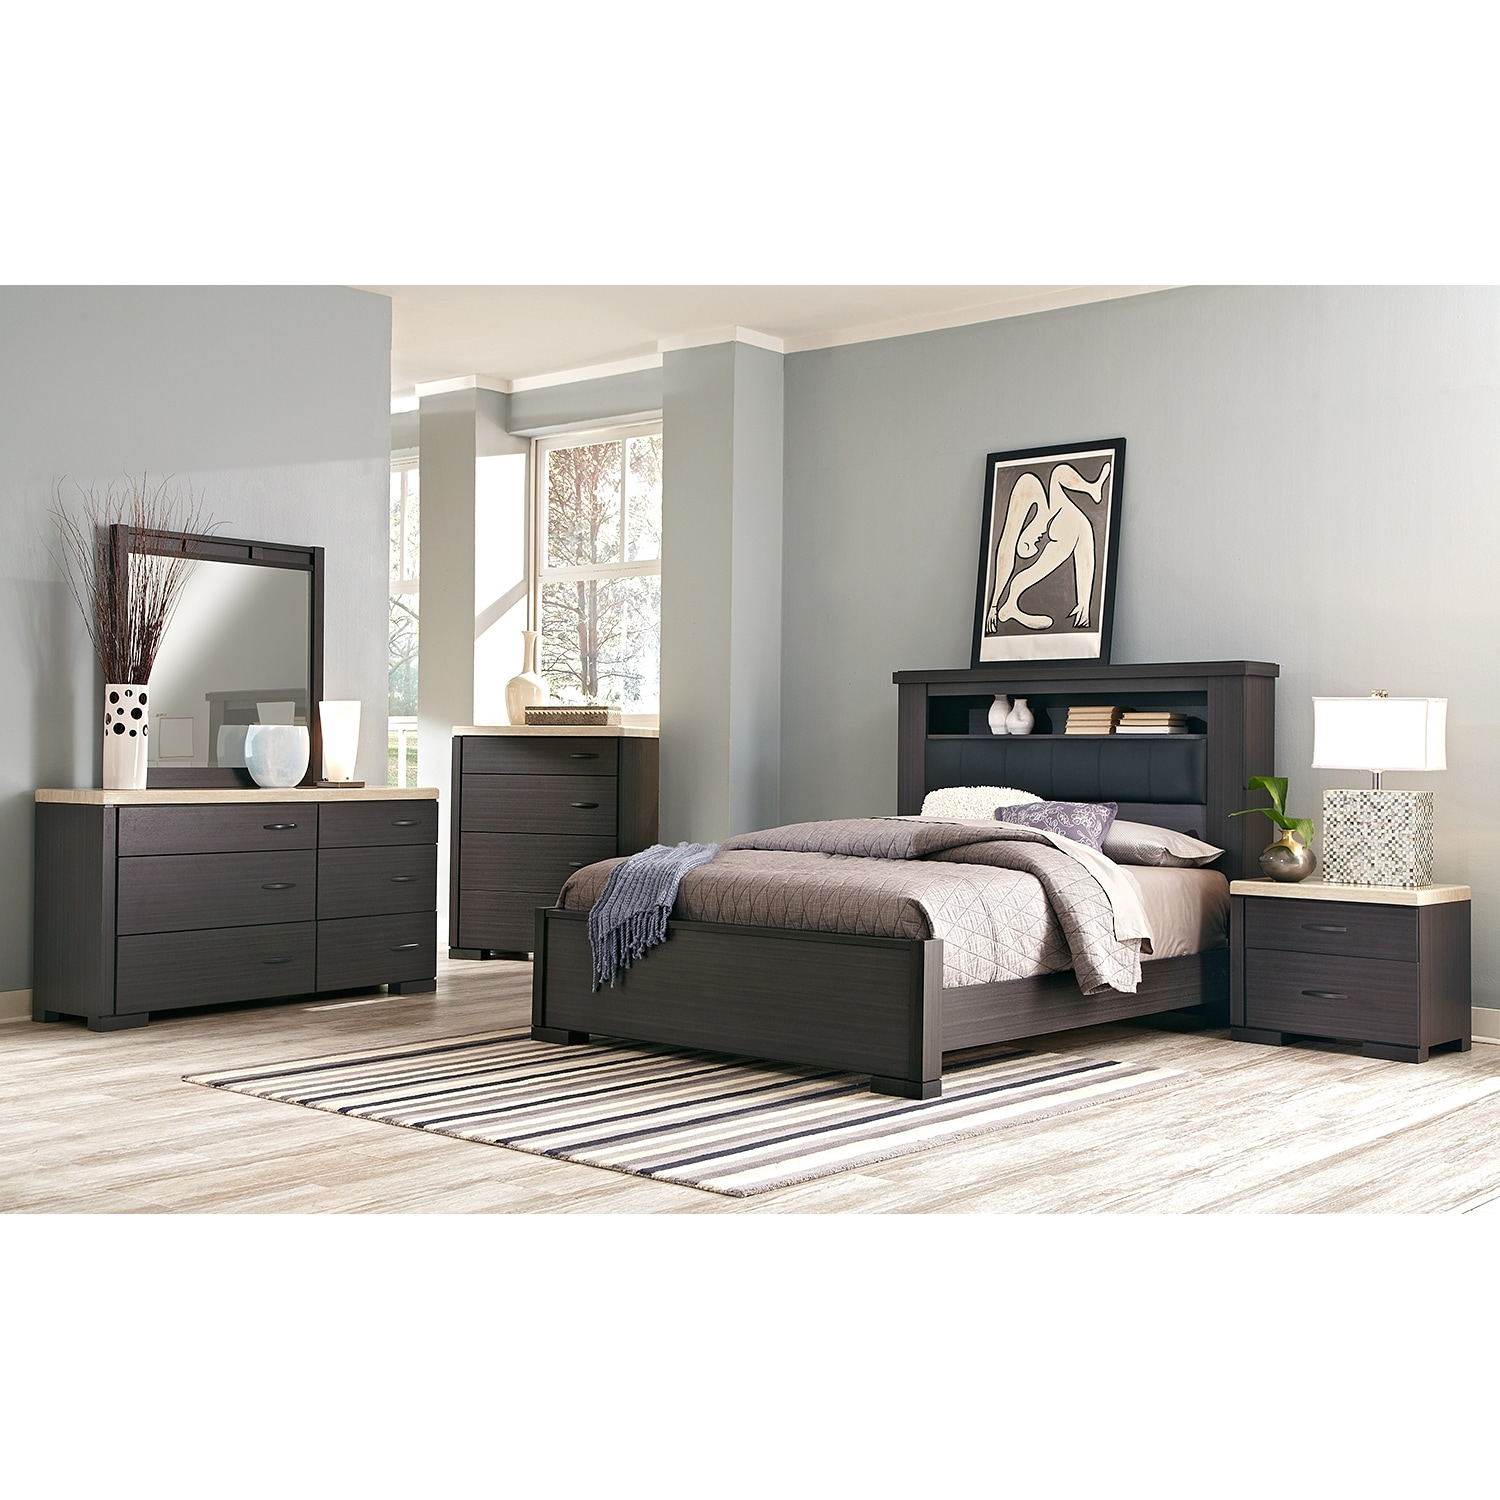 Camino 7 Piece King Bedroom Set Charcoal And Ivory